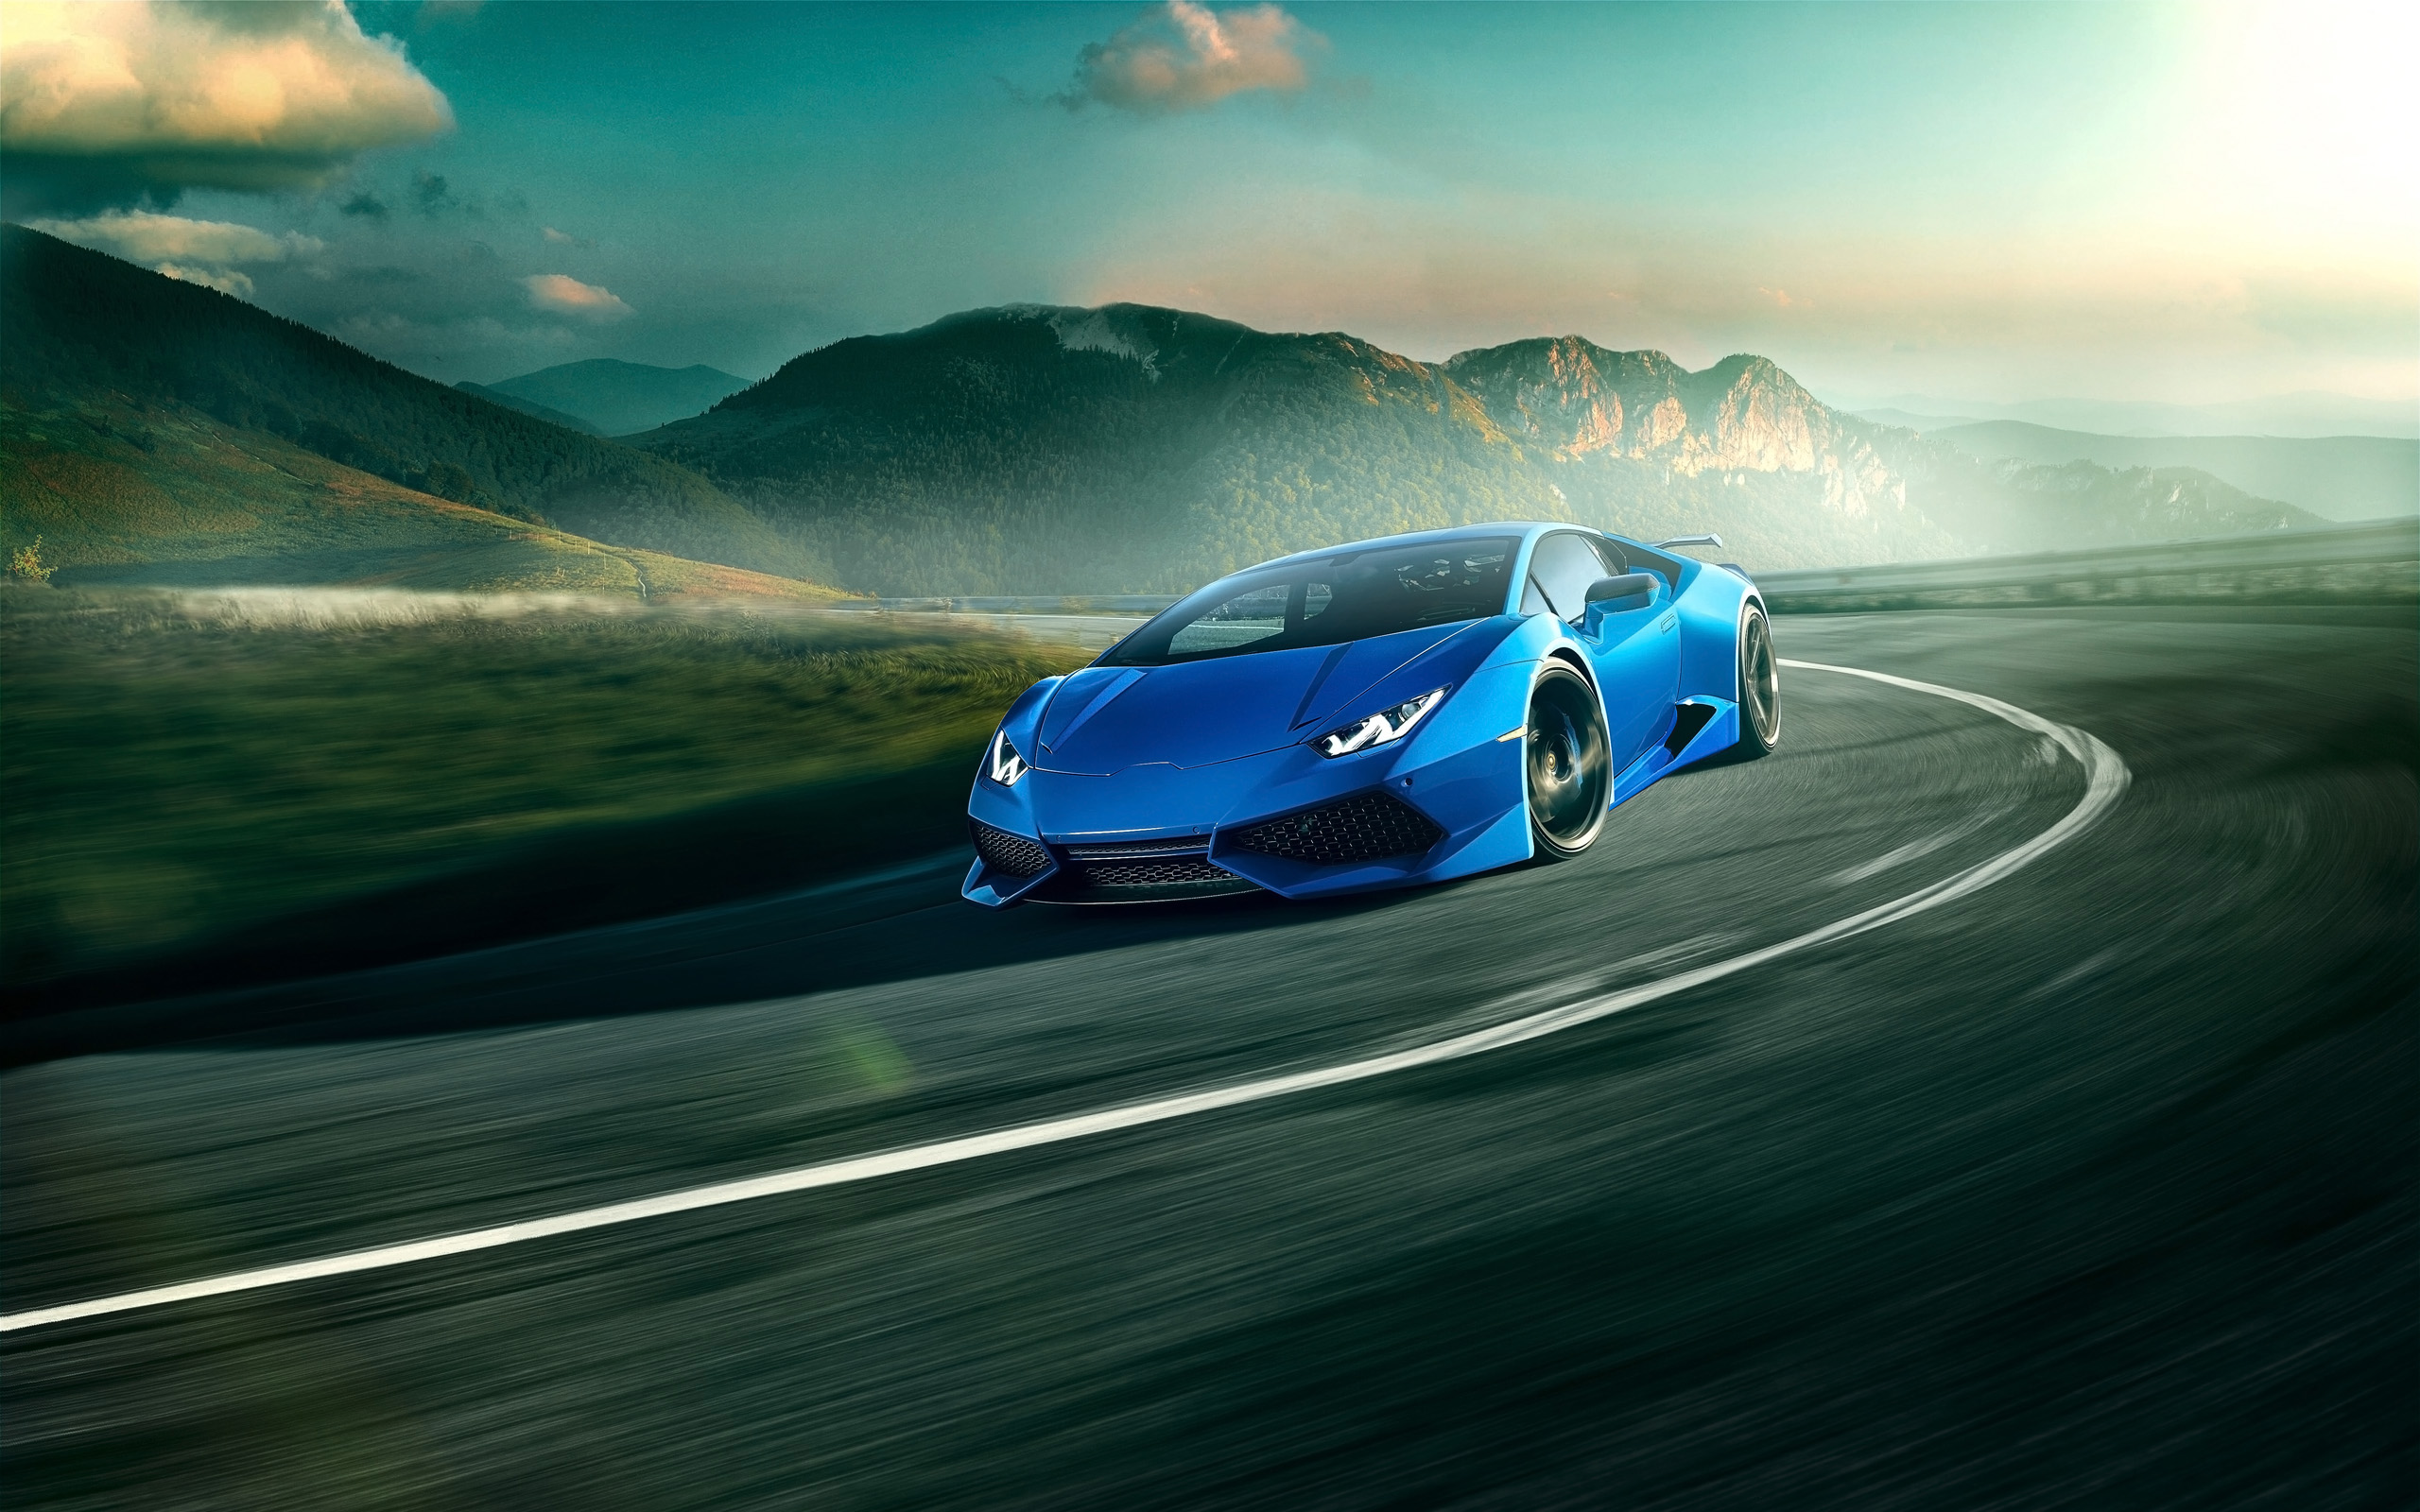 Download hd wallpapers of lamborghini cars